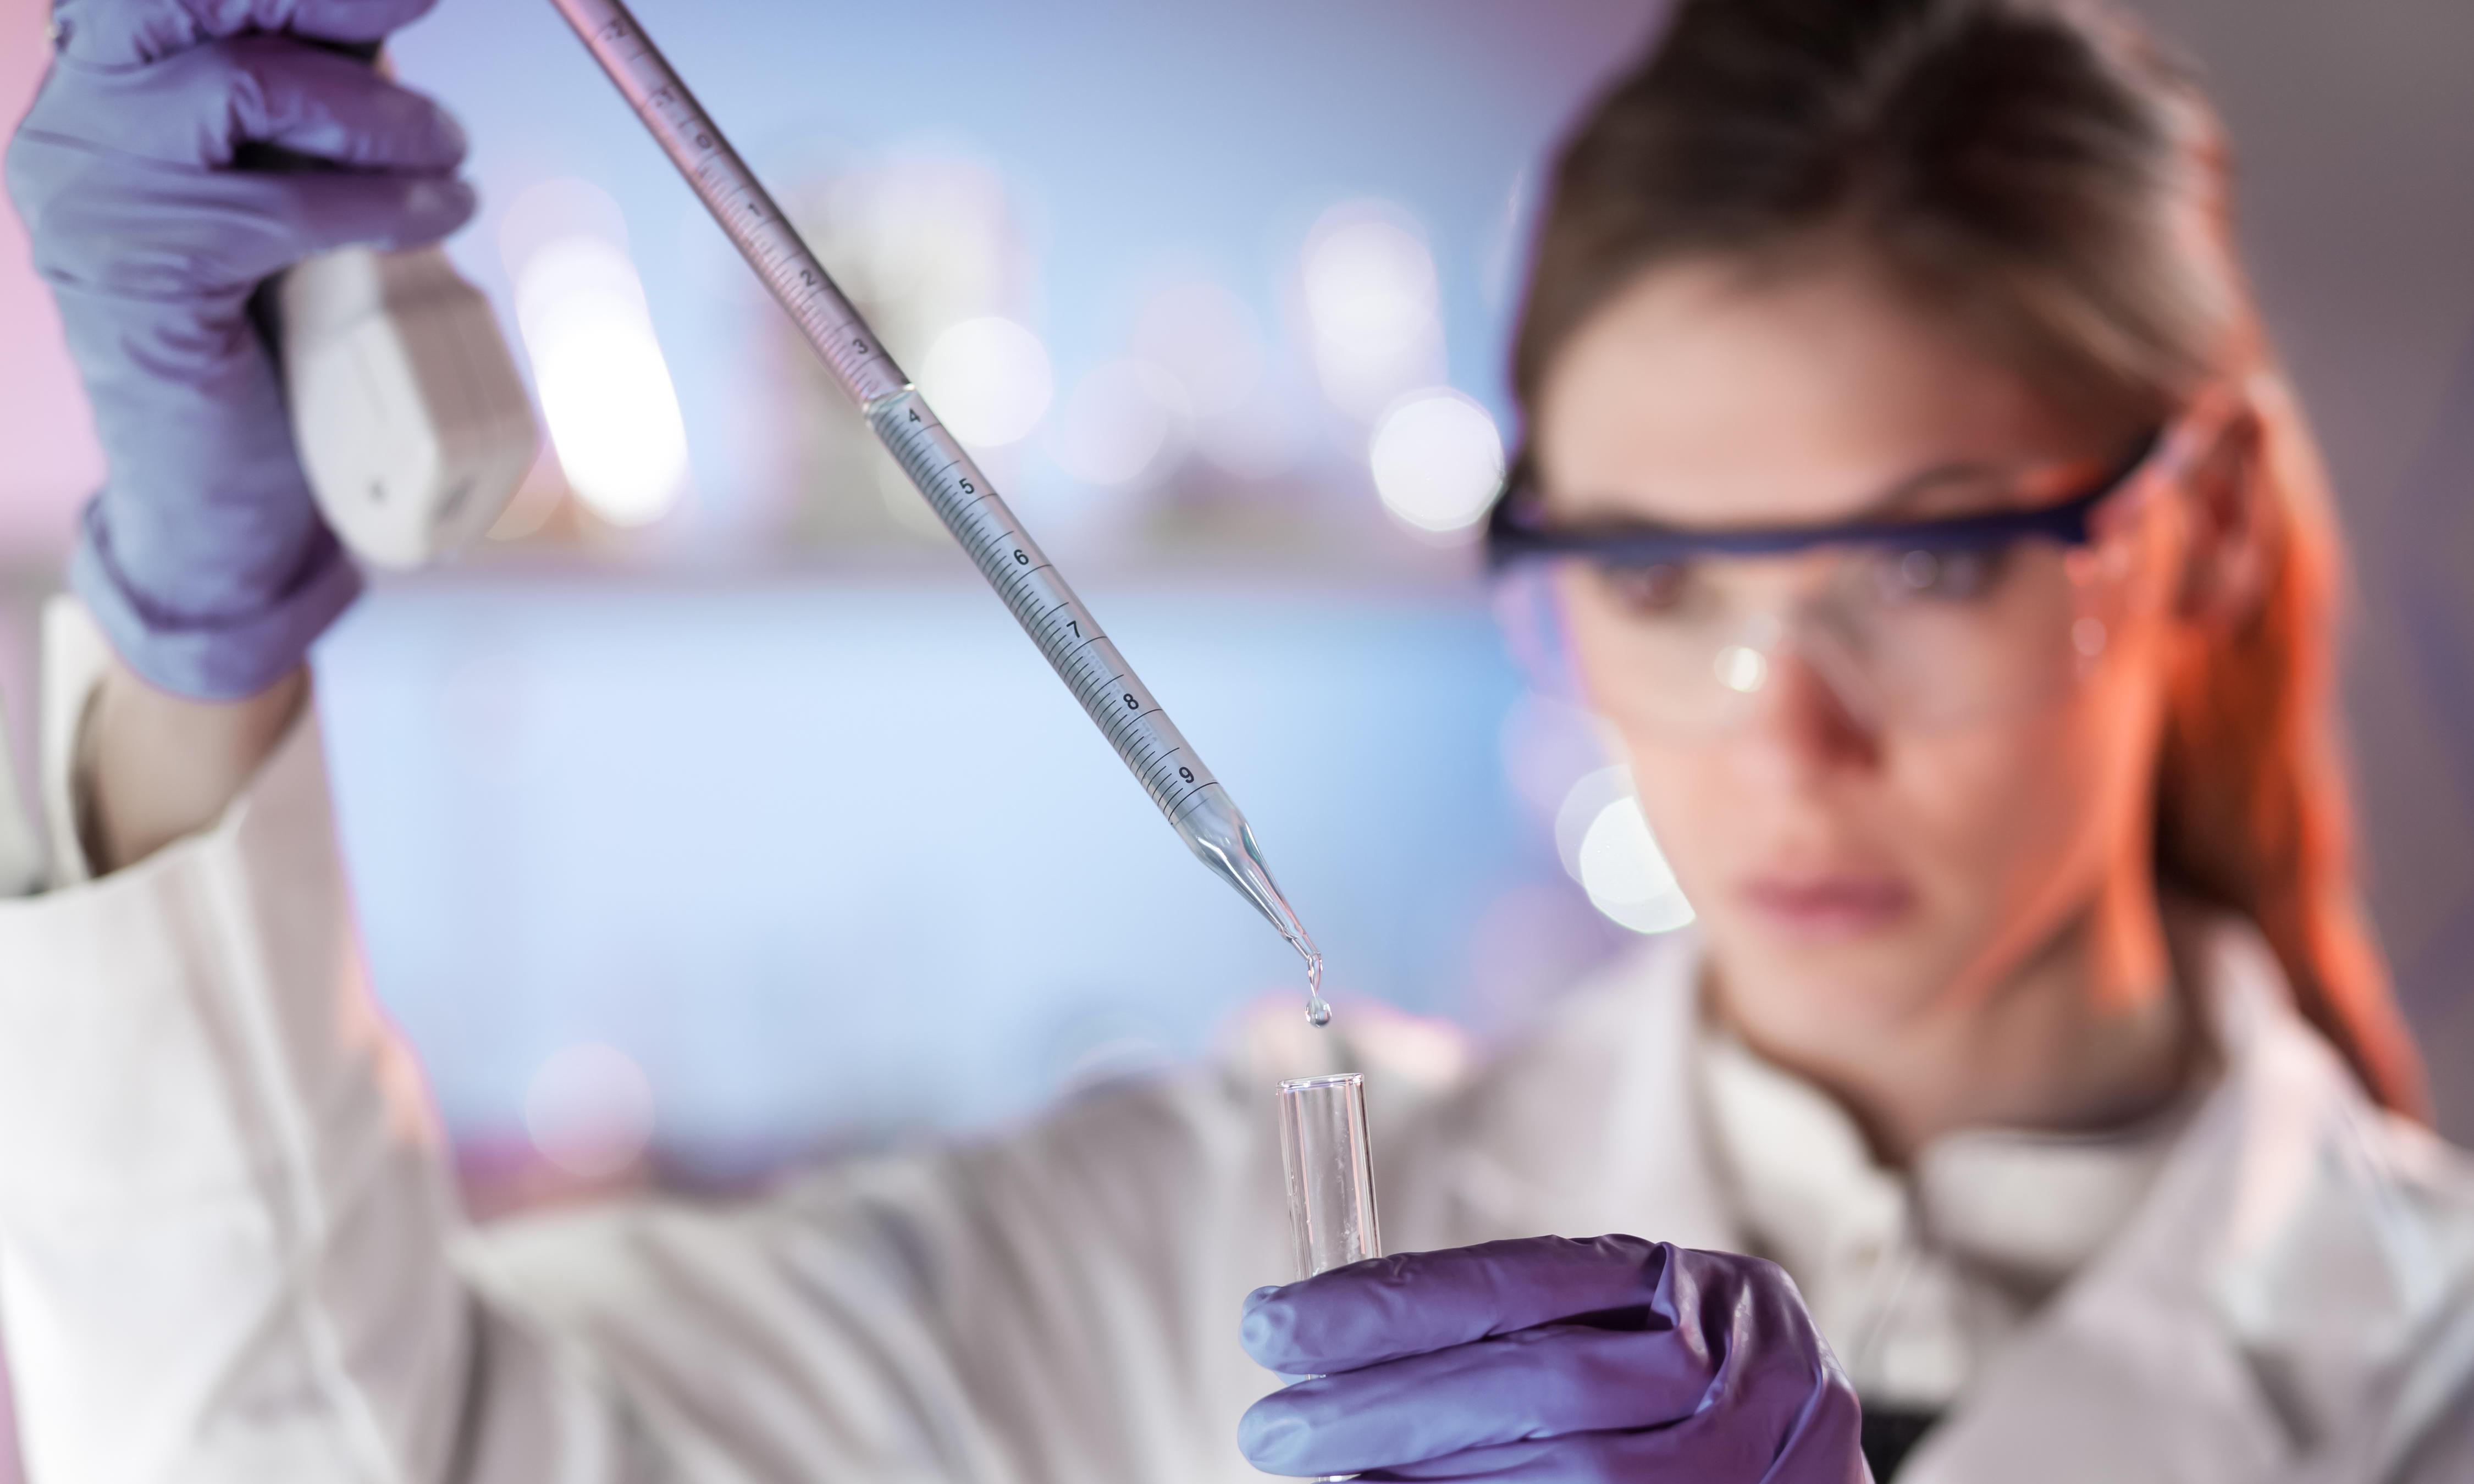 Scientists top list of most trusted professions in US